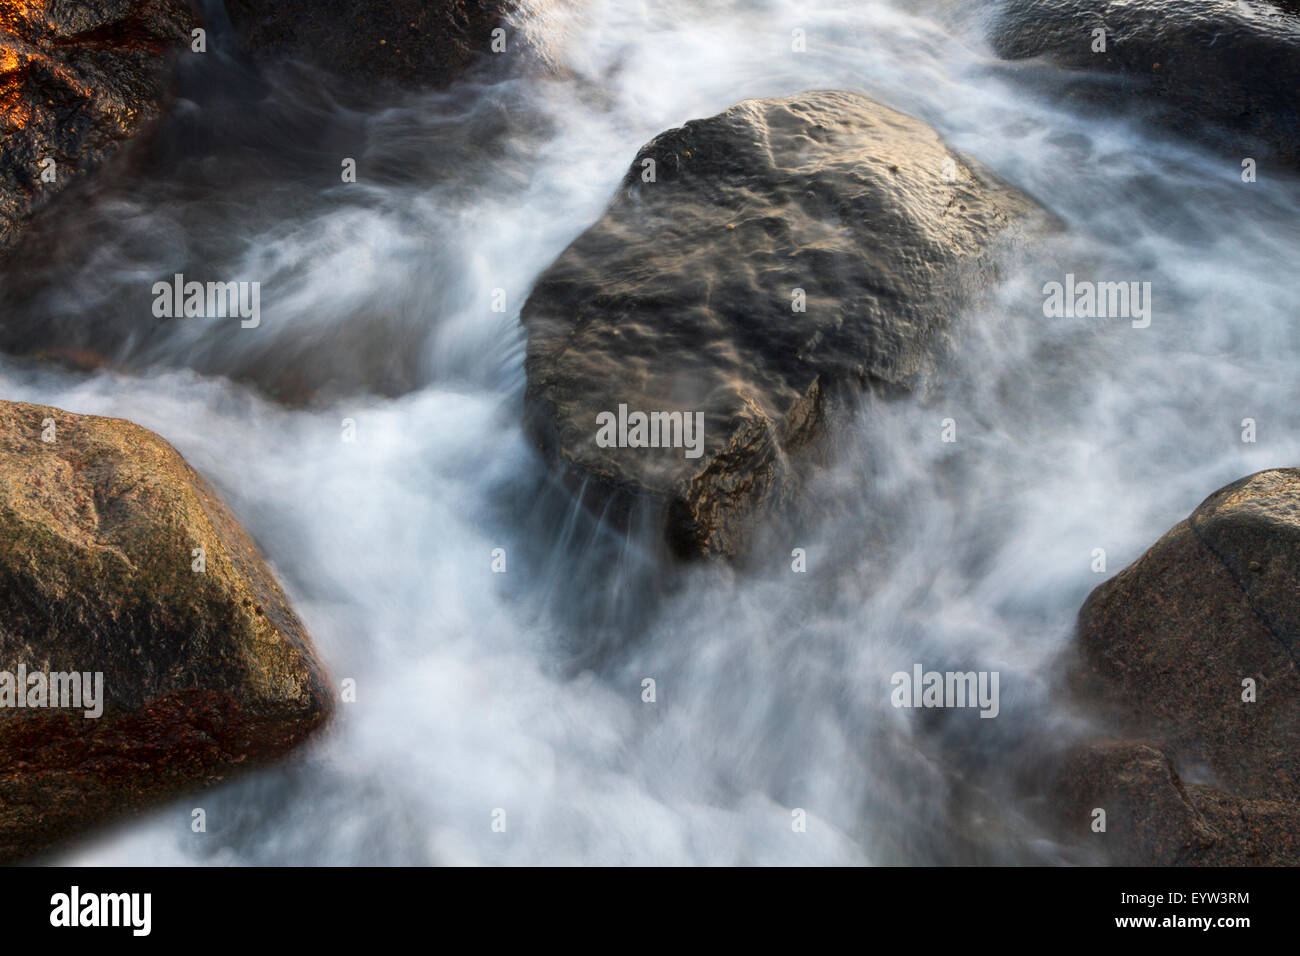 Stones in the sea - Stock Image